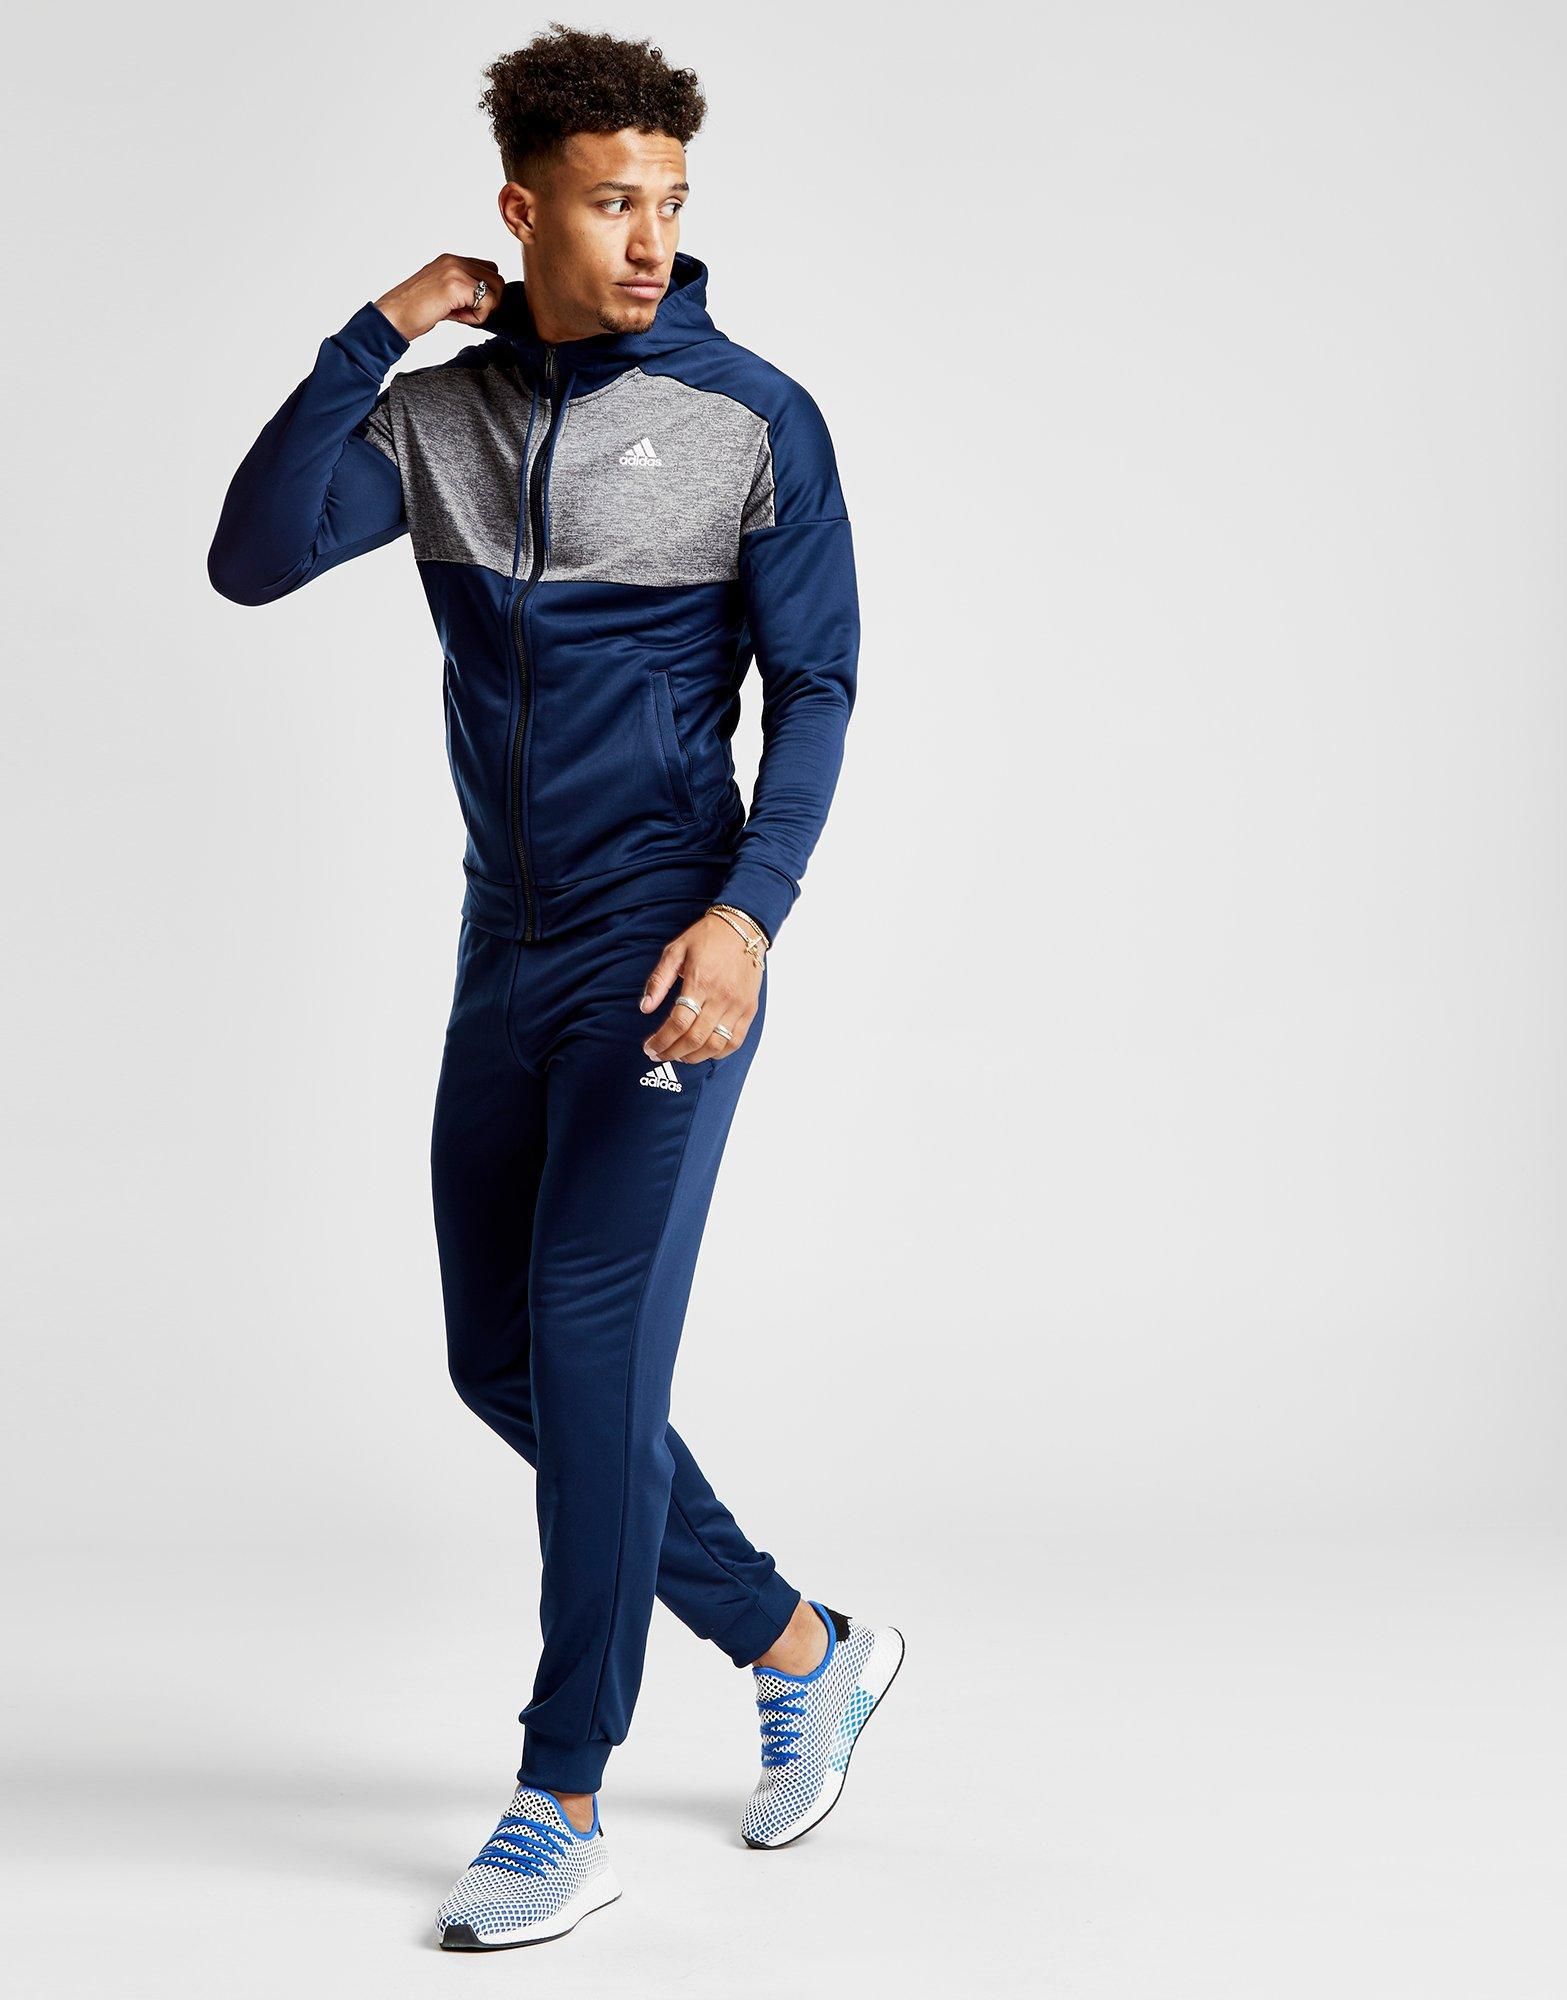 cbccb1c1365b Lyst - adidas Game Time Tracksuit in Blue for Men